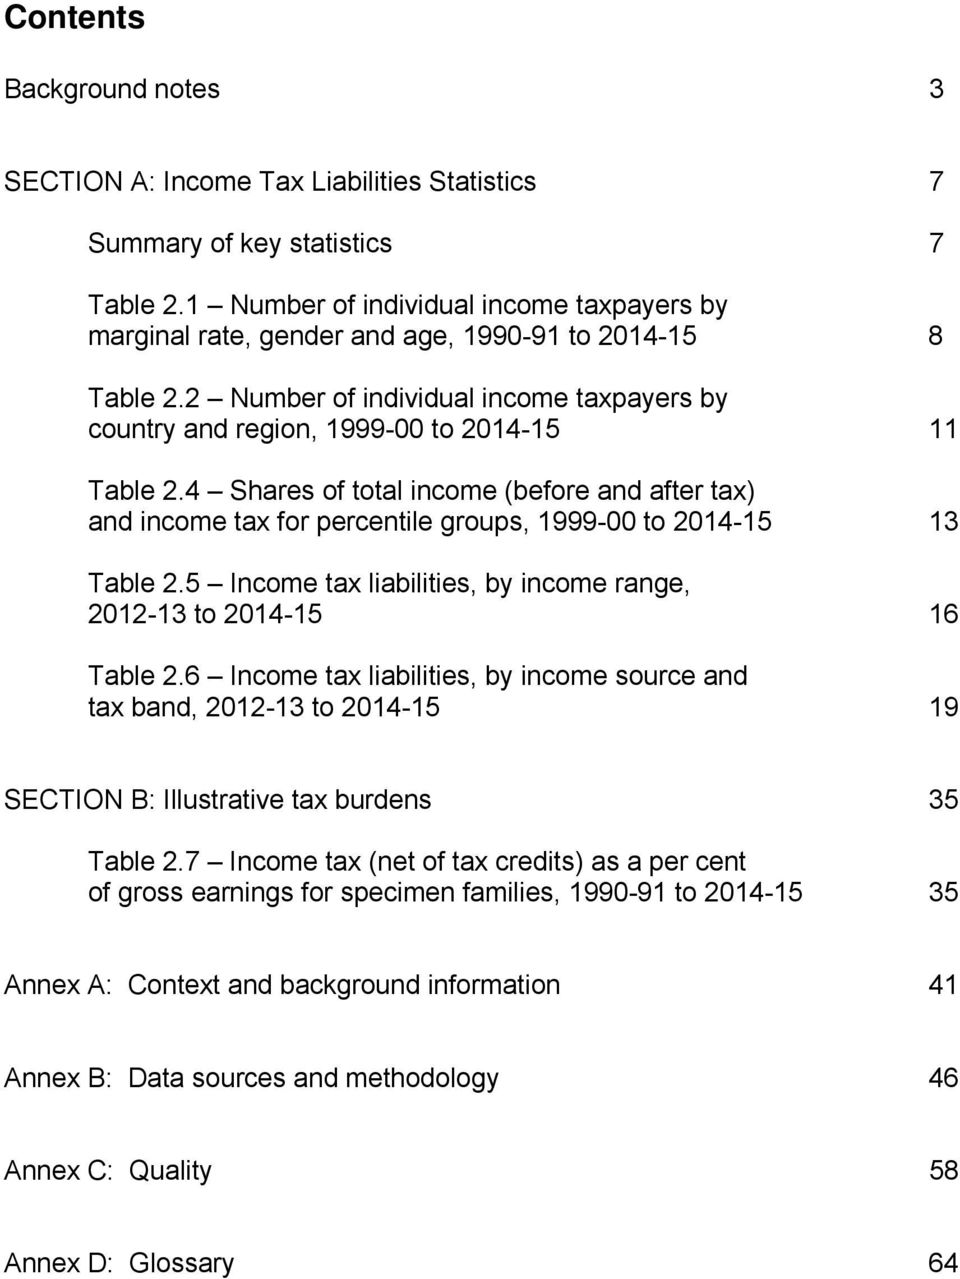 4 Shares of total income (before and after tax) and income tax for percentile groups, 1999-00 to 2014-15 13 Table 2.5 Income tax liabilities, by income range, 2012-13 to 2014-15 16 Table 2.